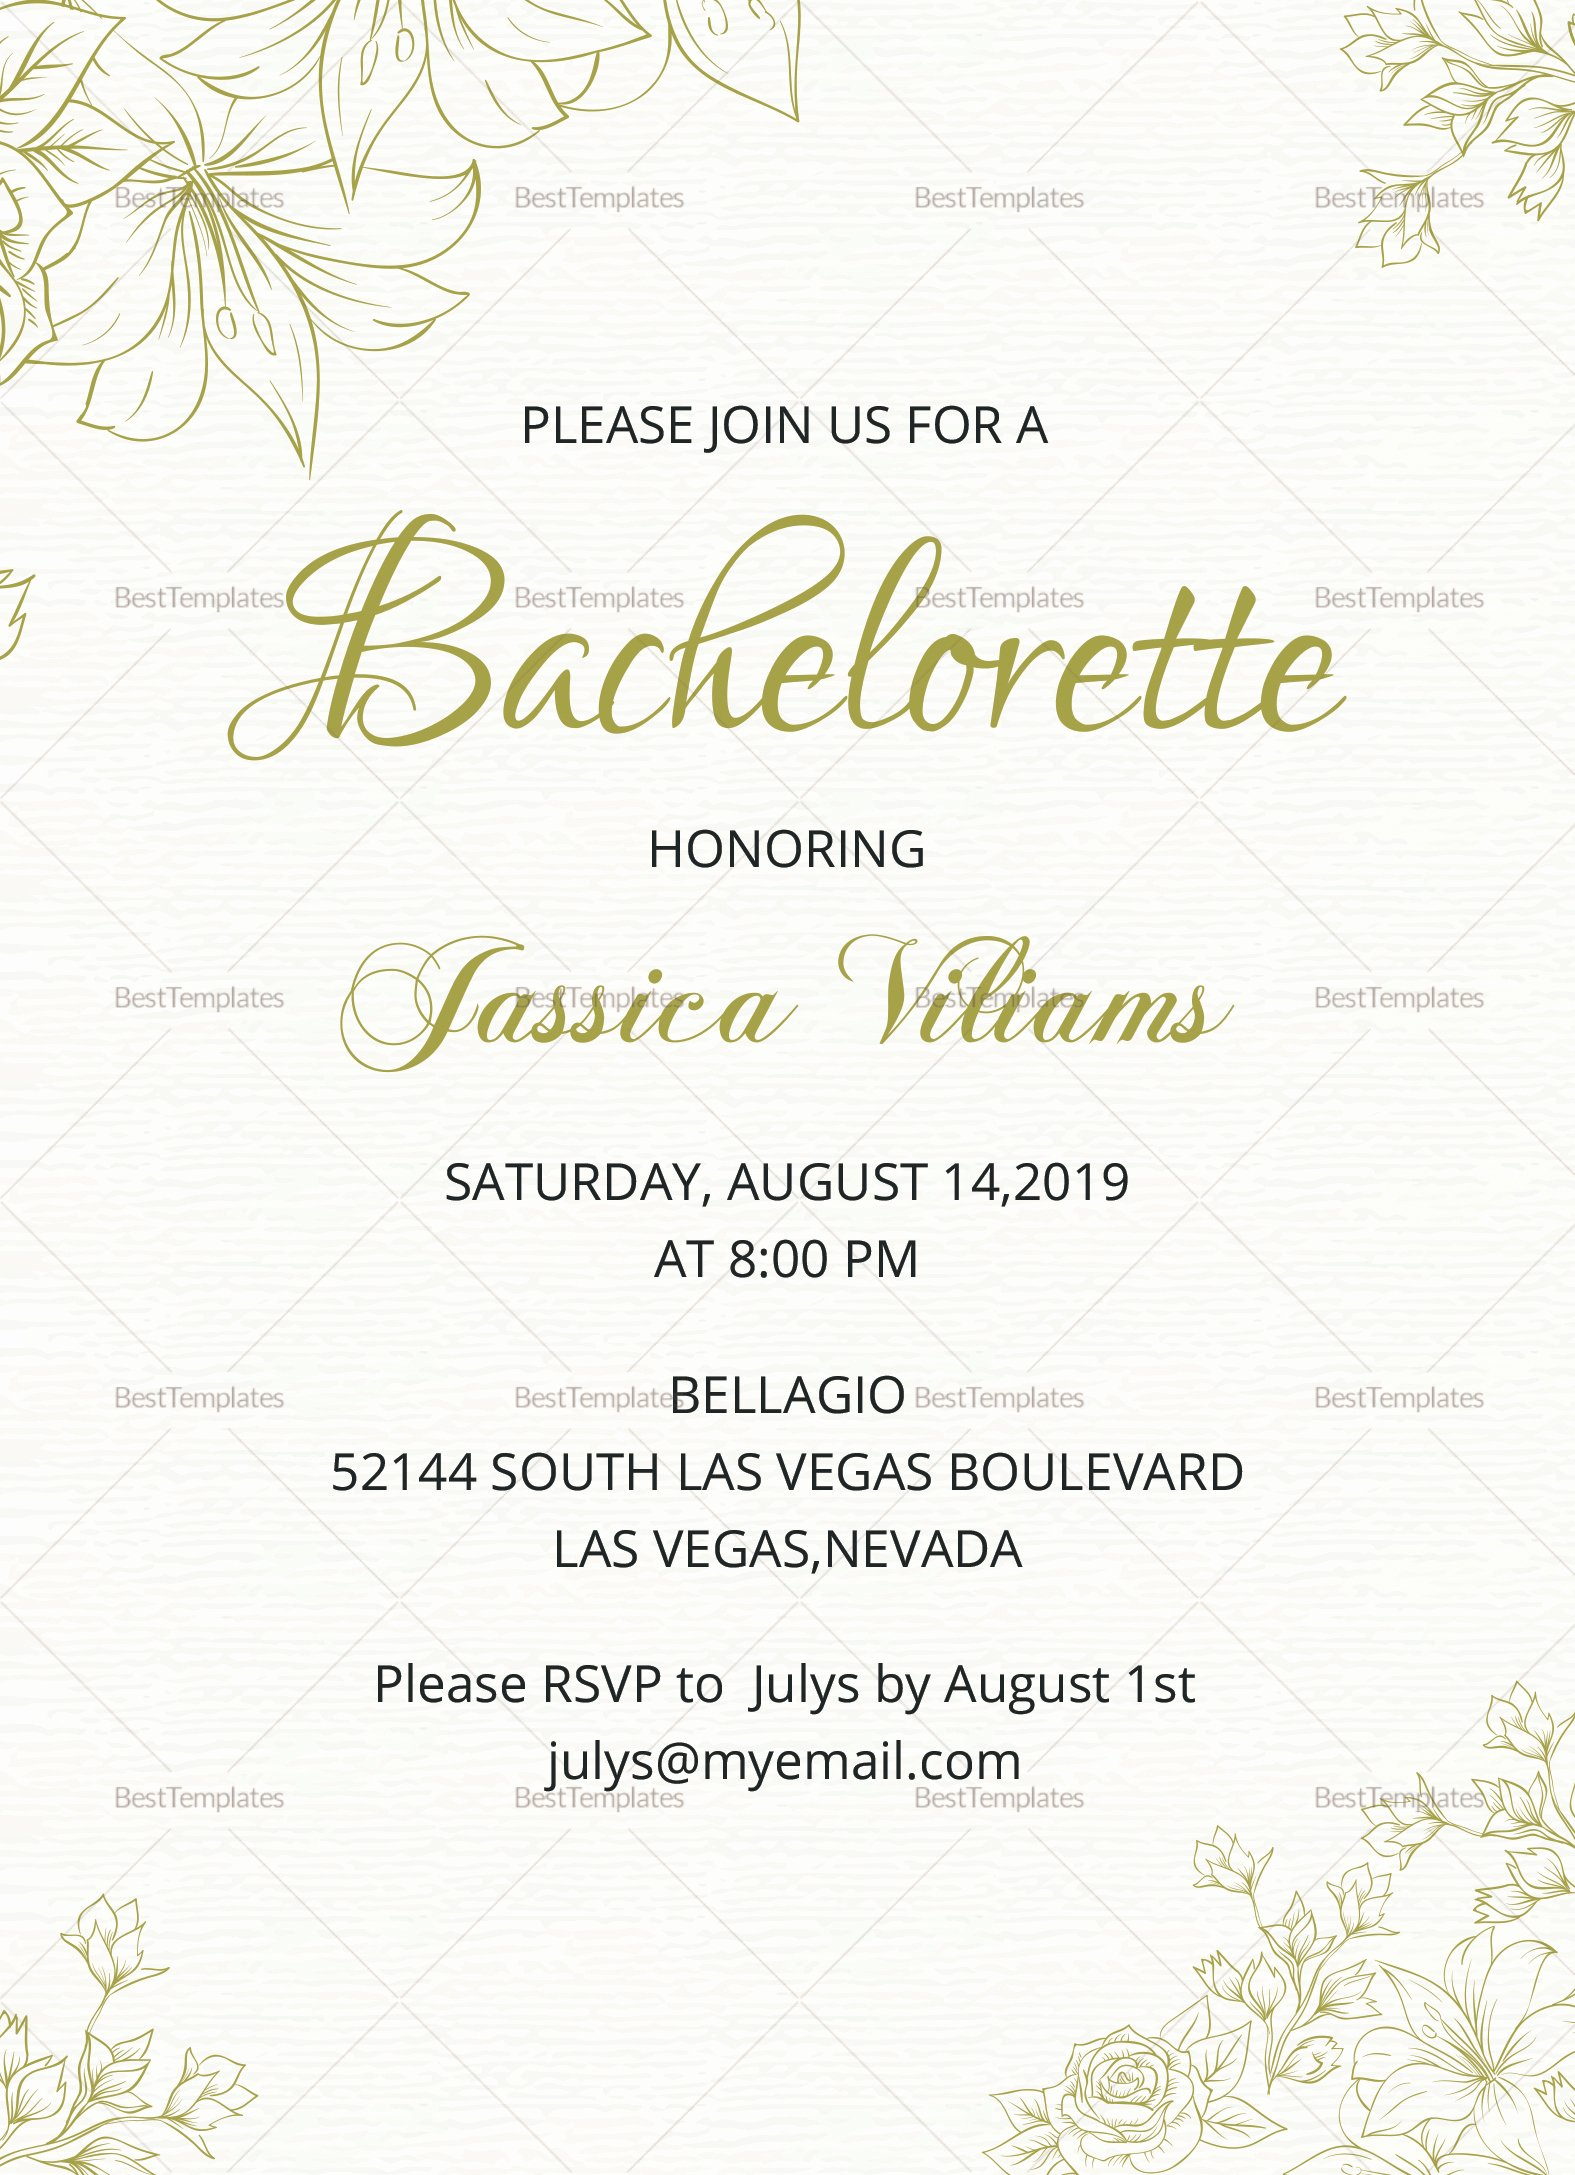 Word Party Invite Template Luxury Simple Bachelorette Party Invitation Design Template In